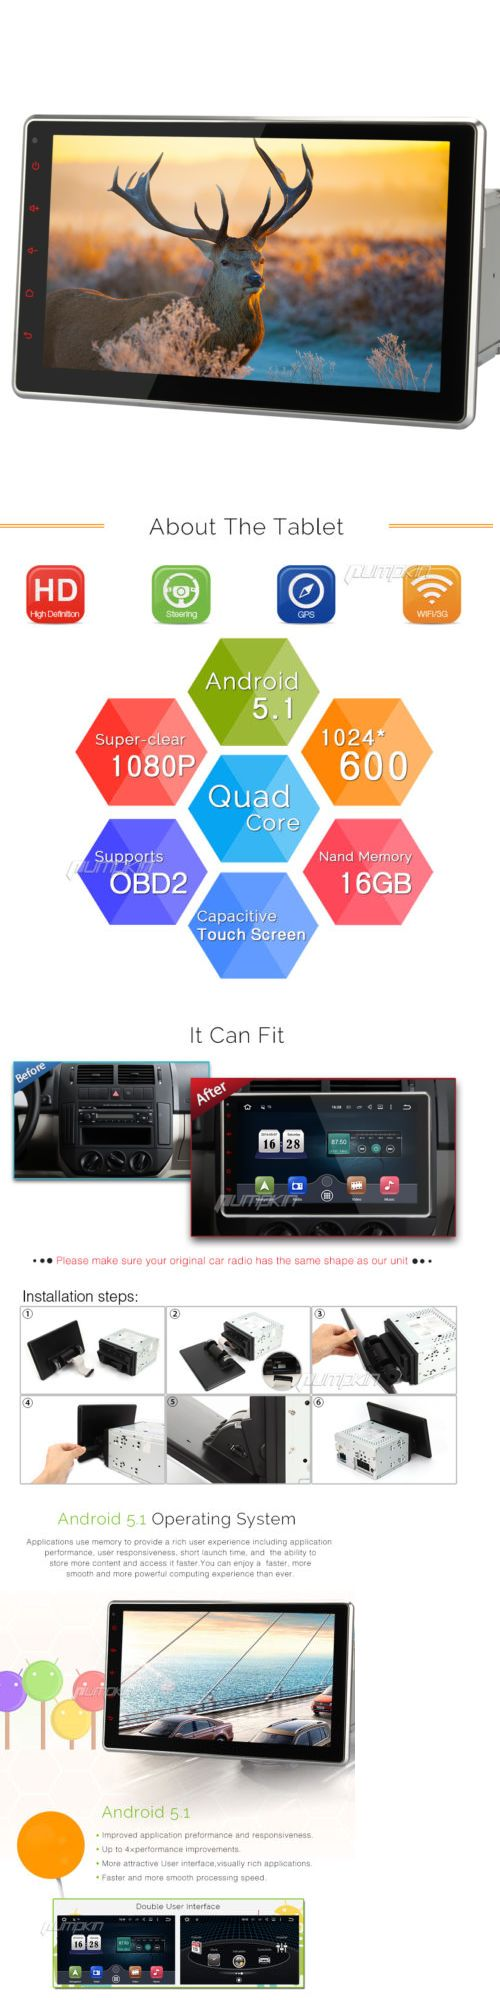 Video In-Dash Units w GPS: 10.1 1024*600 Hd Android 5.1 Quad Core 2Din Car Dvd Stereo Radio Gps Dab Player -> BUY IT NOW ONLY: $337.45 on eBay!